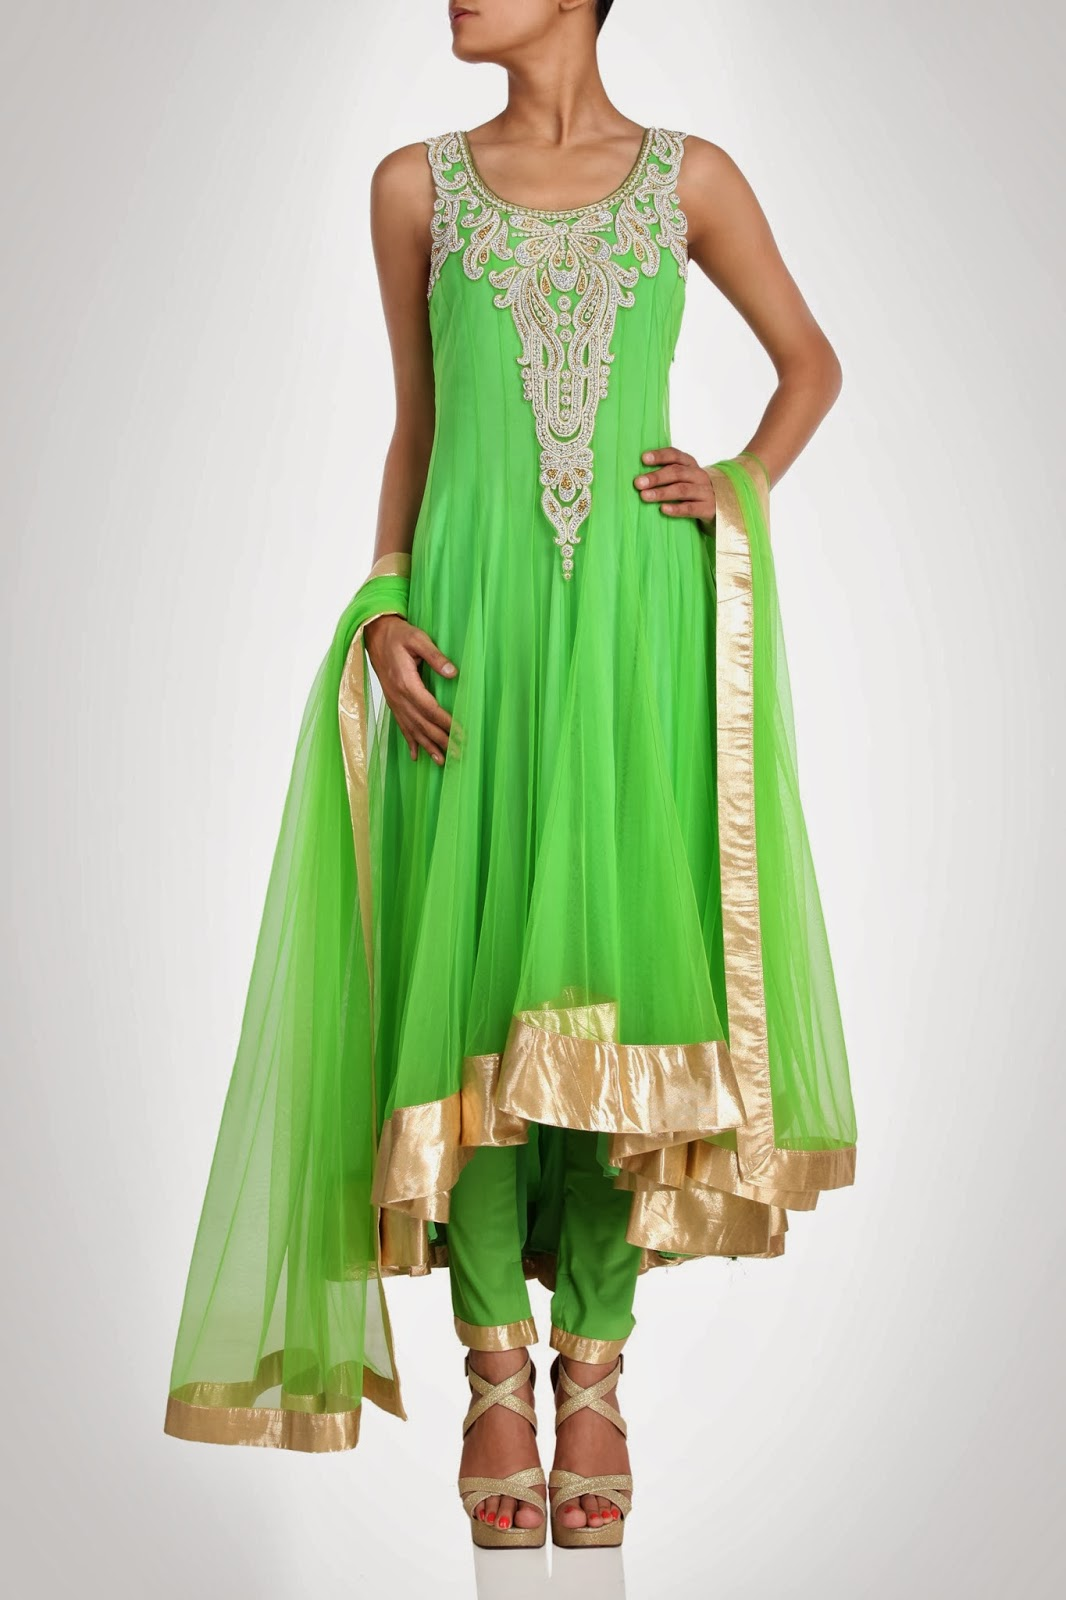 Lime green wedding dresses accented by the neon green